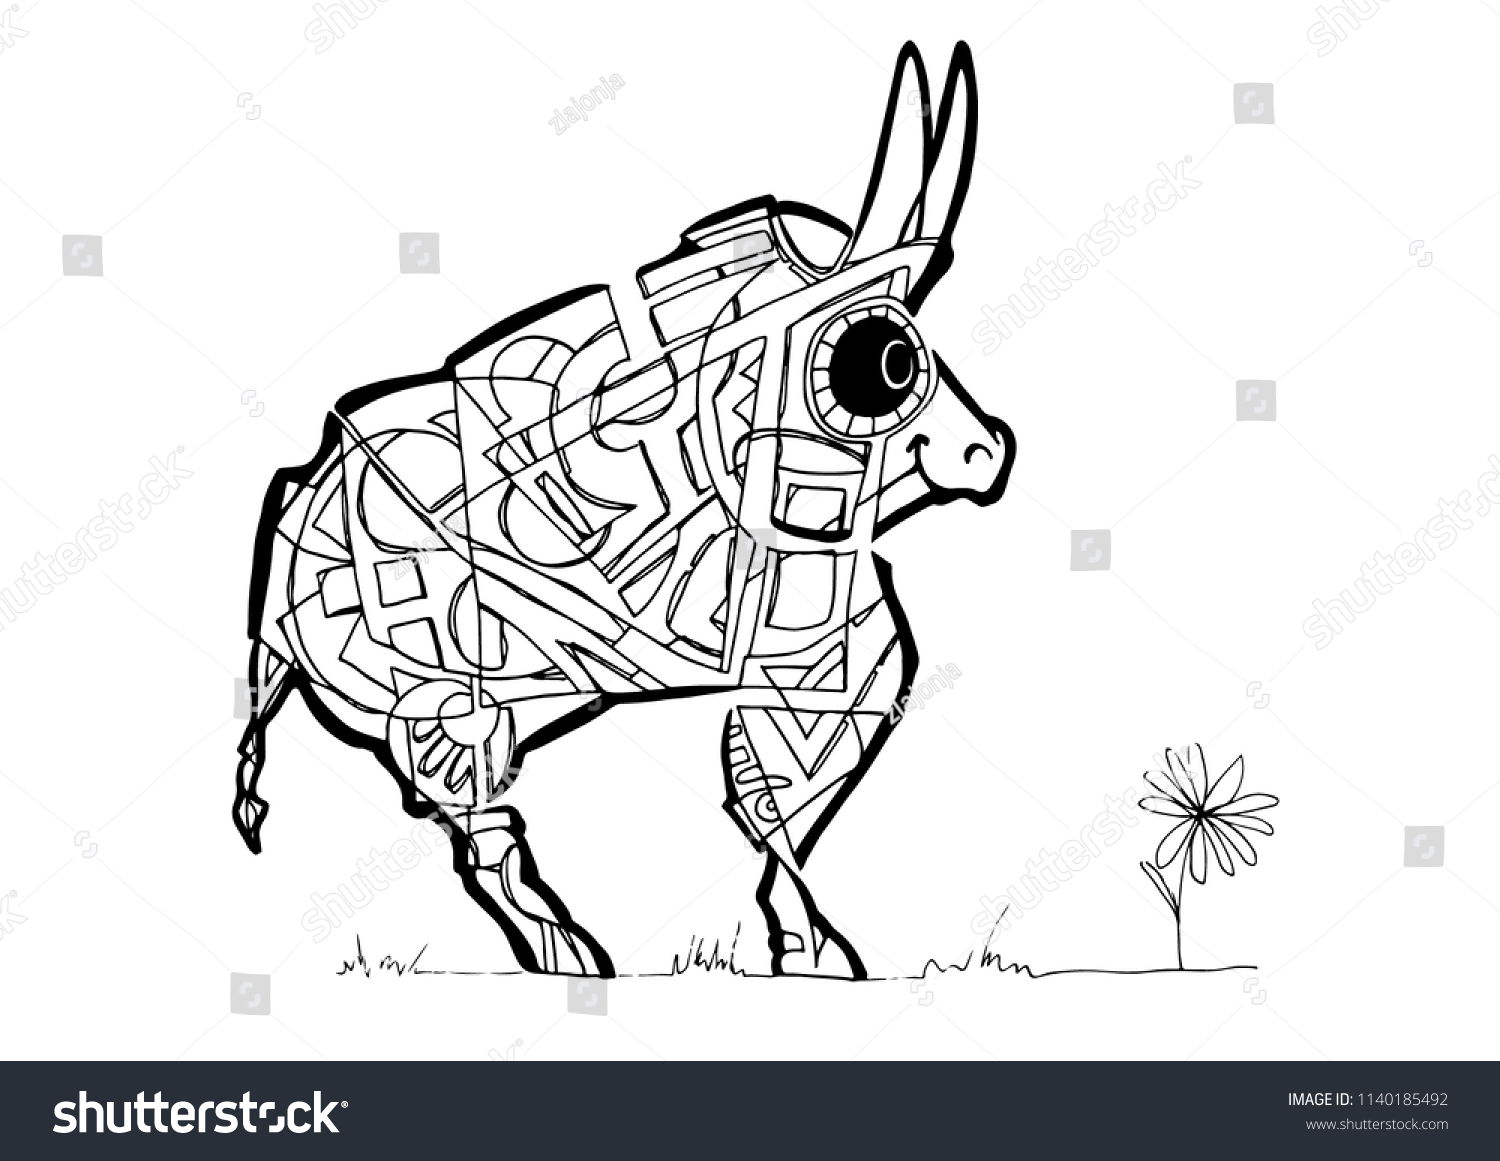 Abstract Ox Coloring Page Stock Vector (Royalty Free) 1140185492 ...